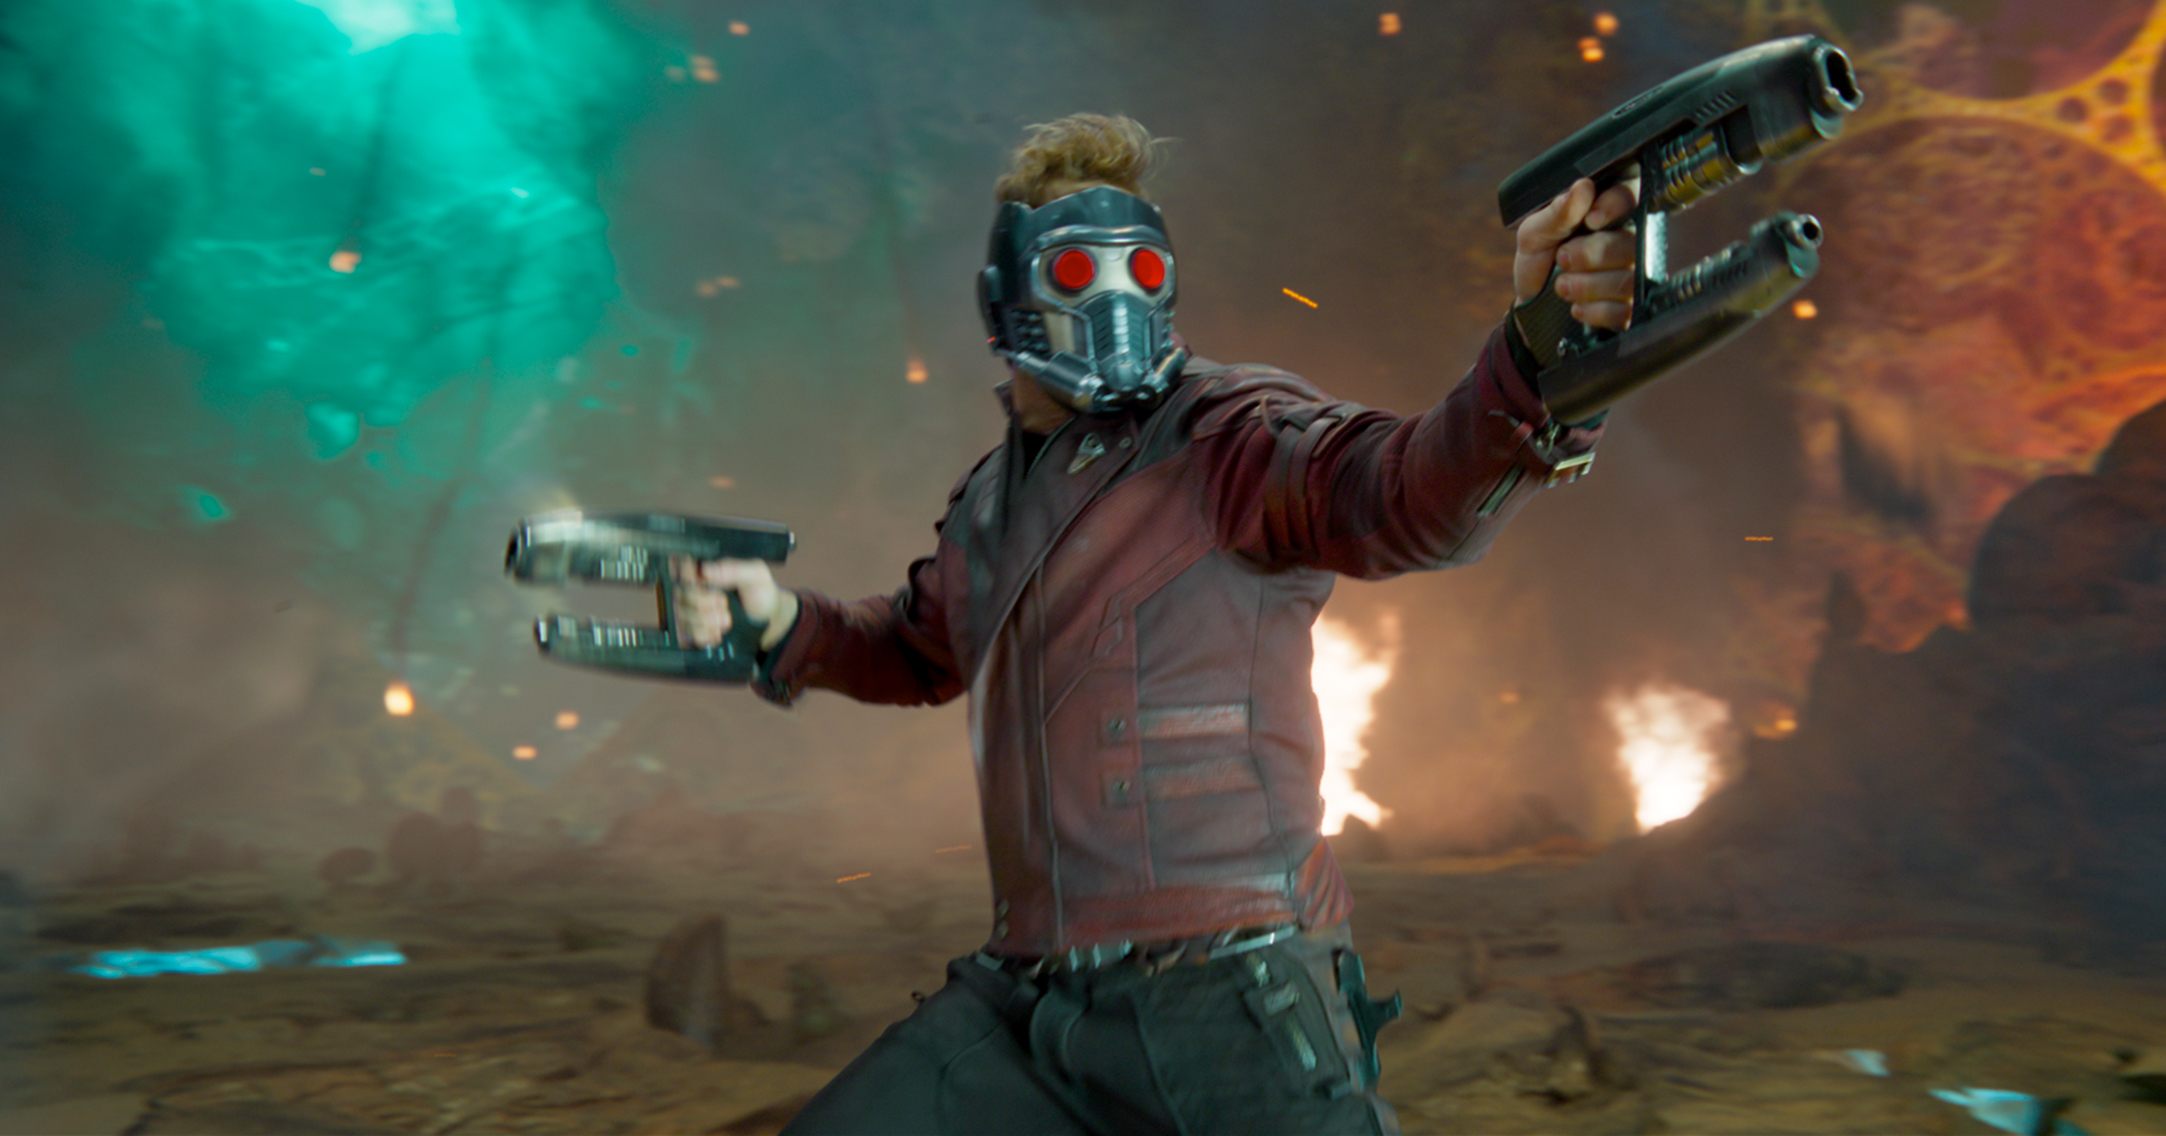 Guardians of the Galaxy 2 Super Bowl Spot: An Awesome Mix of Badass Cosmic Action